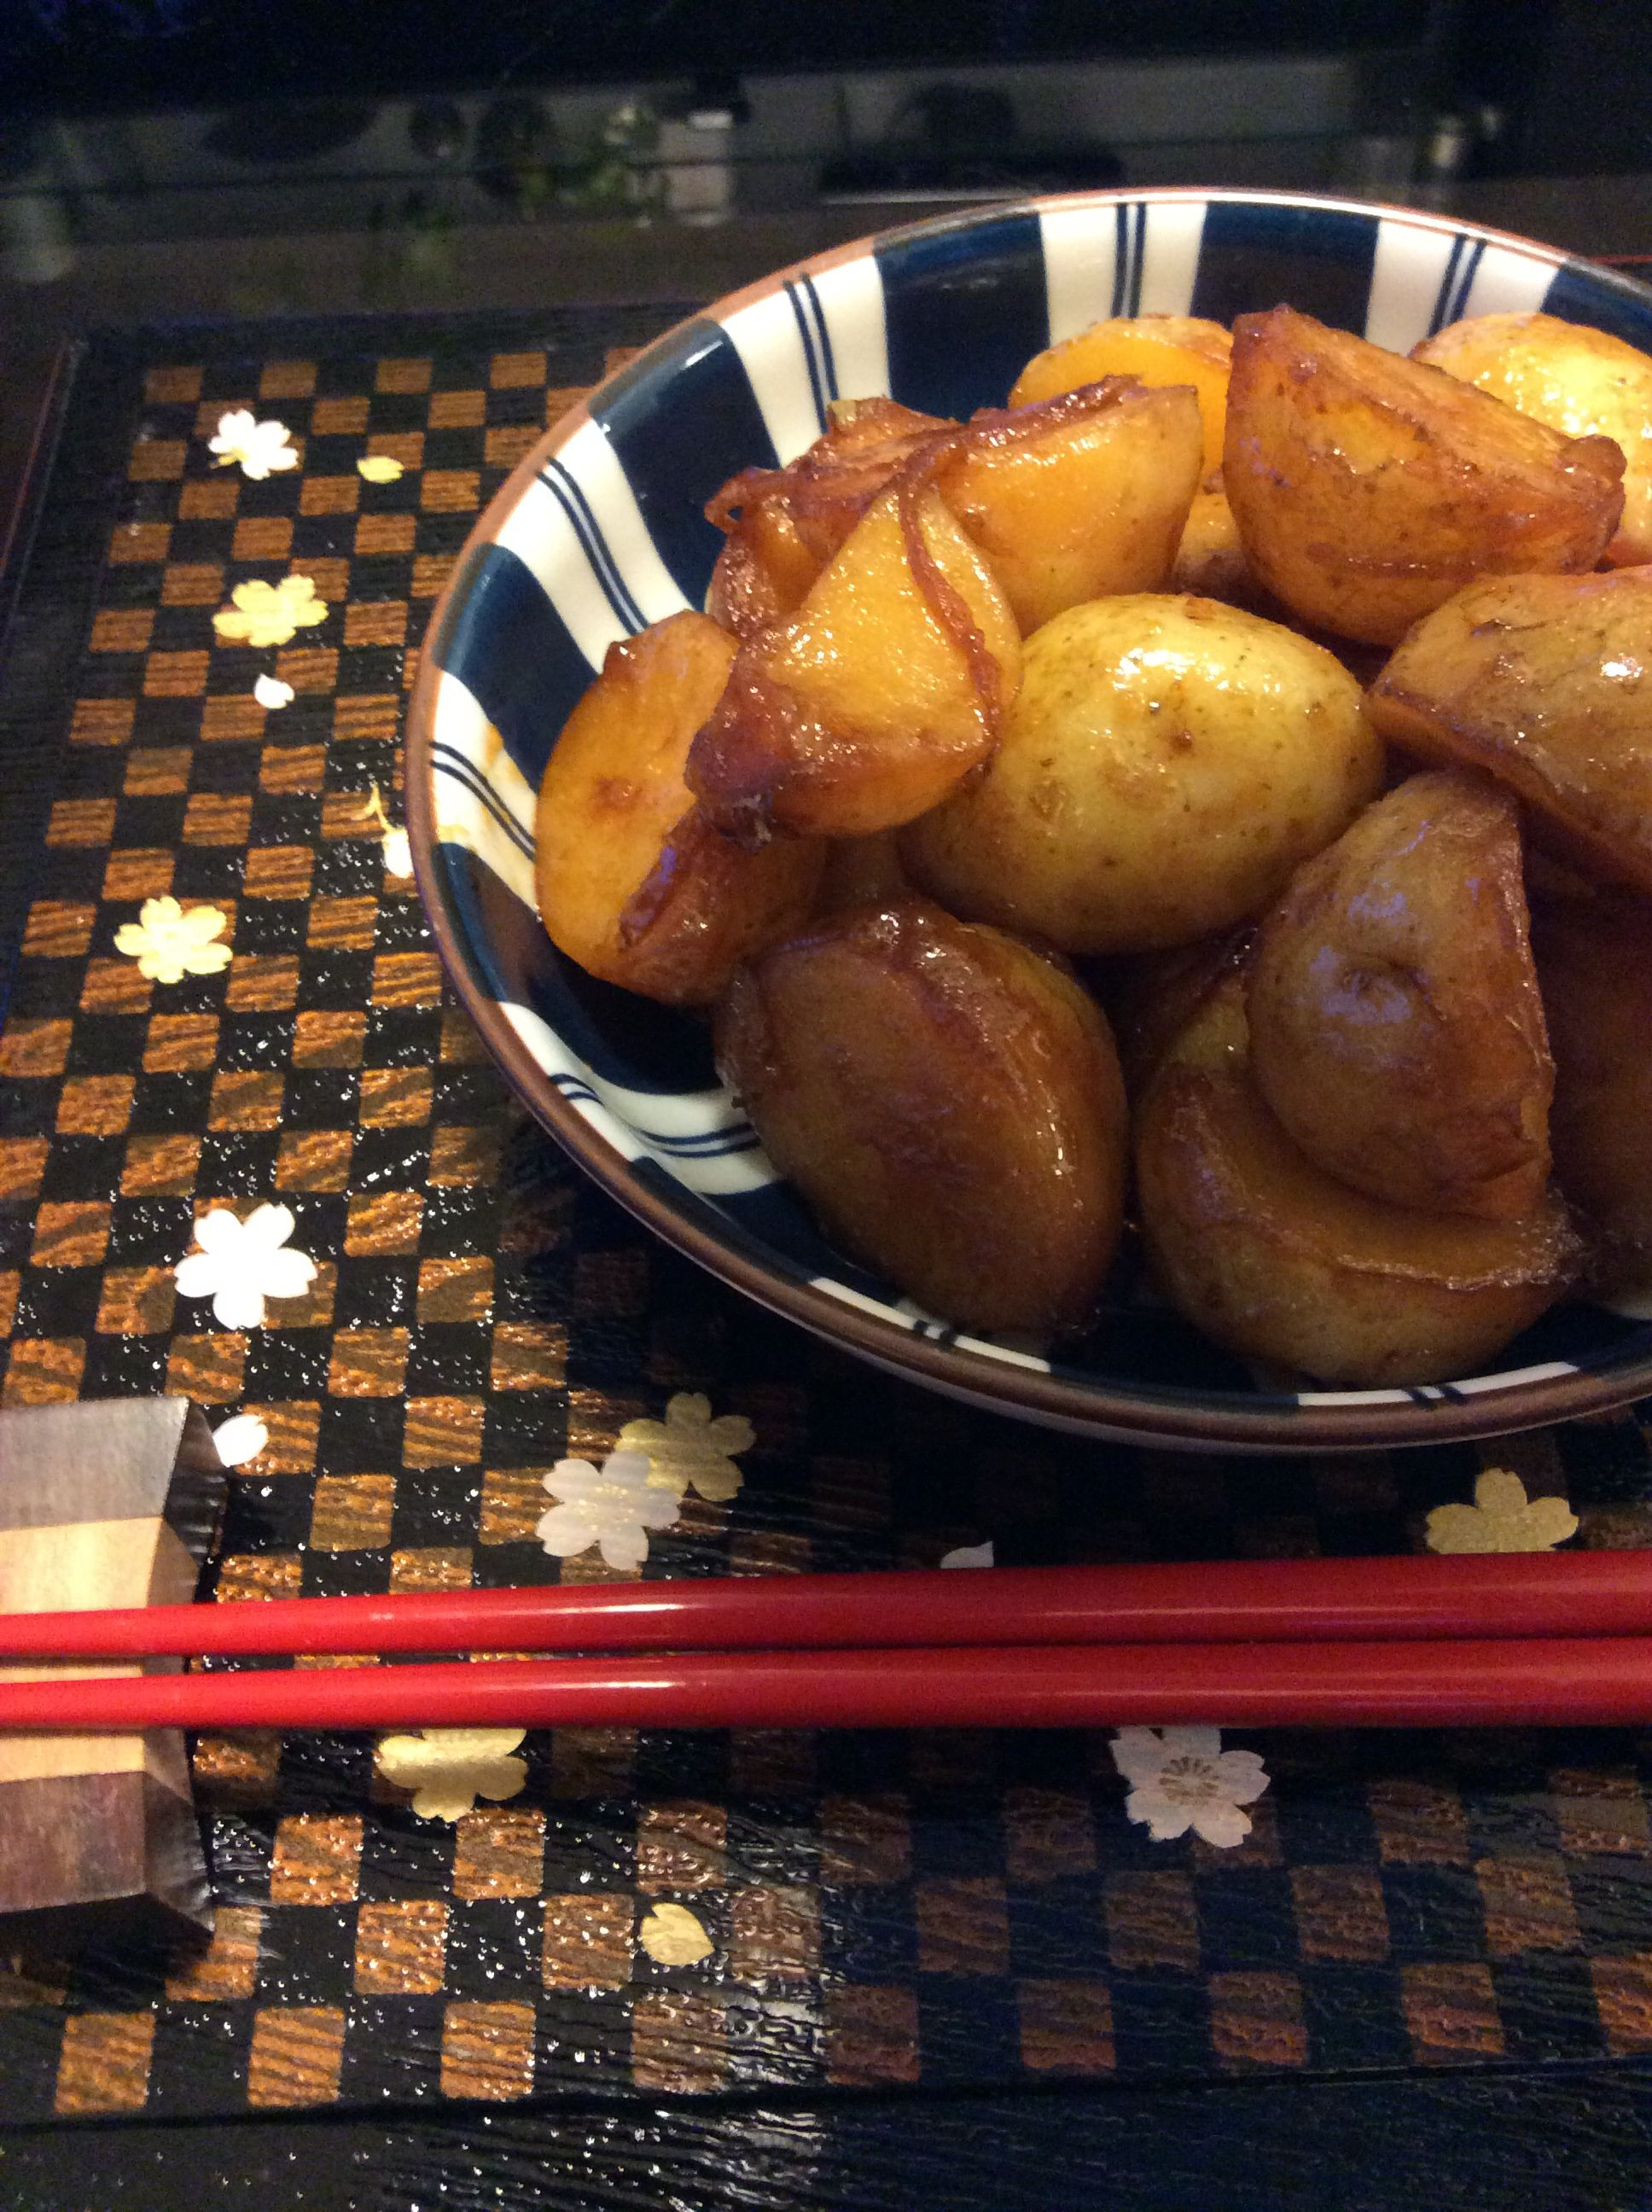 Japanese style potatoes. Easy to make and is the perfect side dish to all your dishes.  http://food.squidoo.com/japanese-potatoes-in-soy-based-sauce-my-mothers-favorite-side-dish                    #japanesefood #potatoes #potatorecipe #soysauce